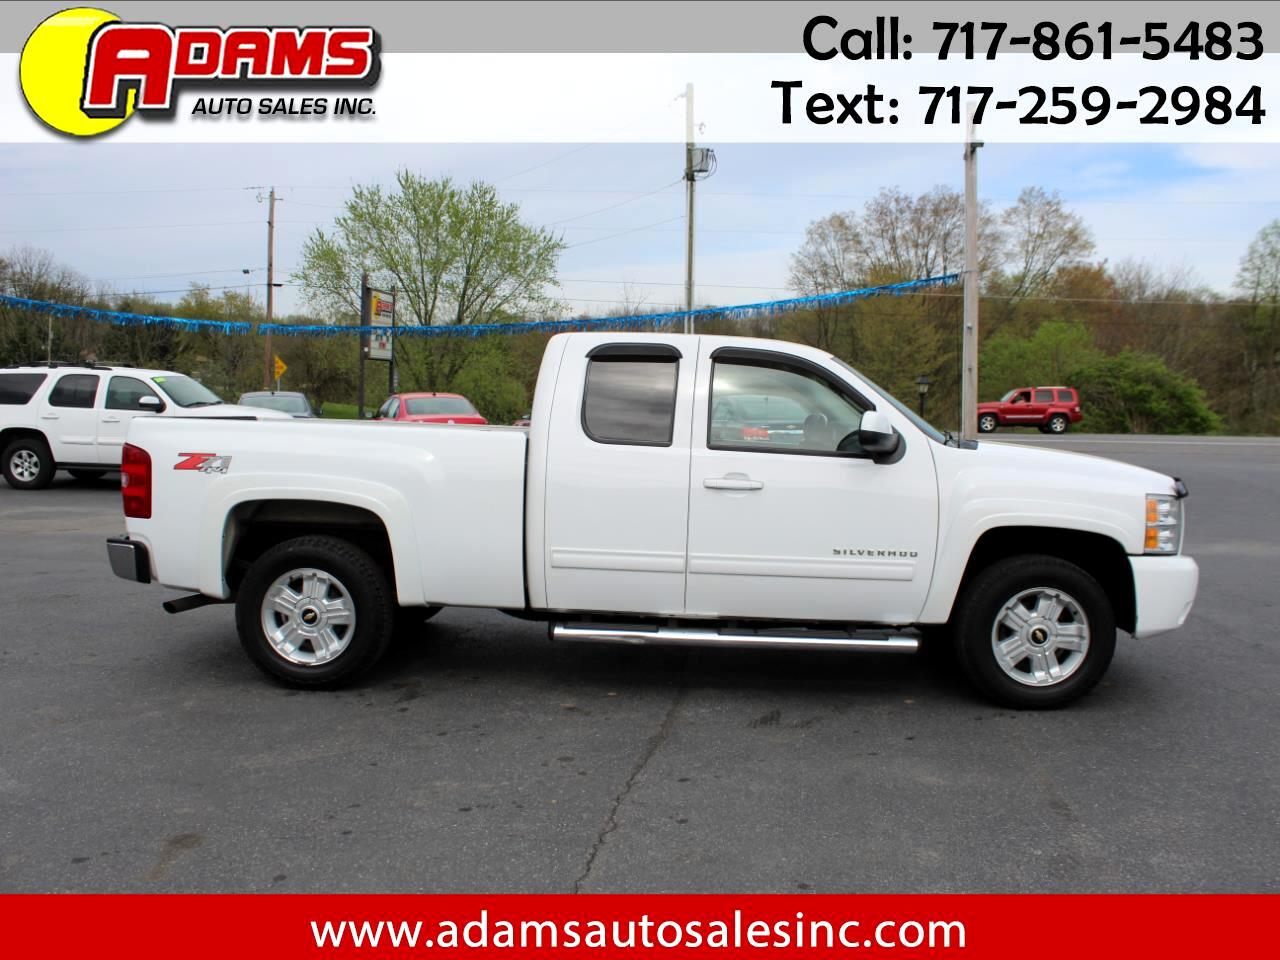 2010 Chevrolet Silverado 1500 Z71 Ext. Cab Short Bed 4WD